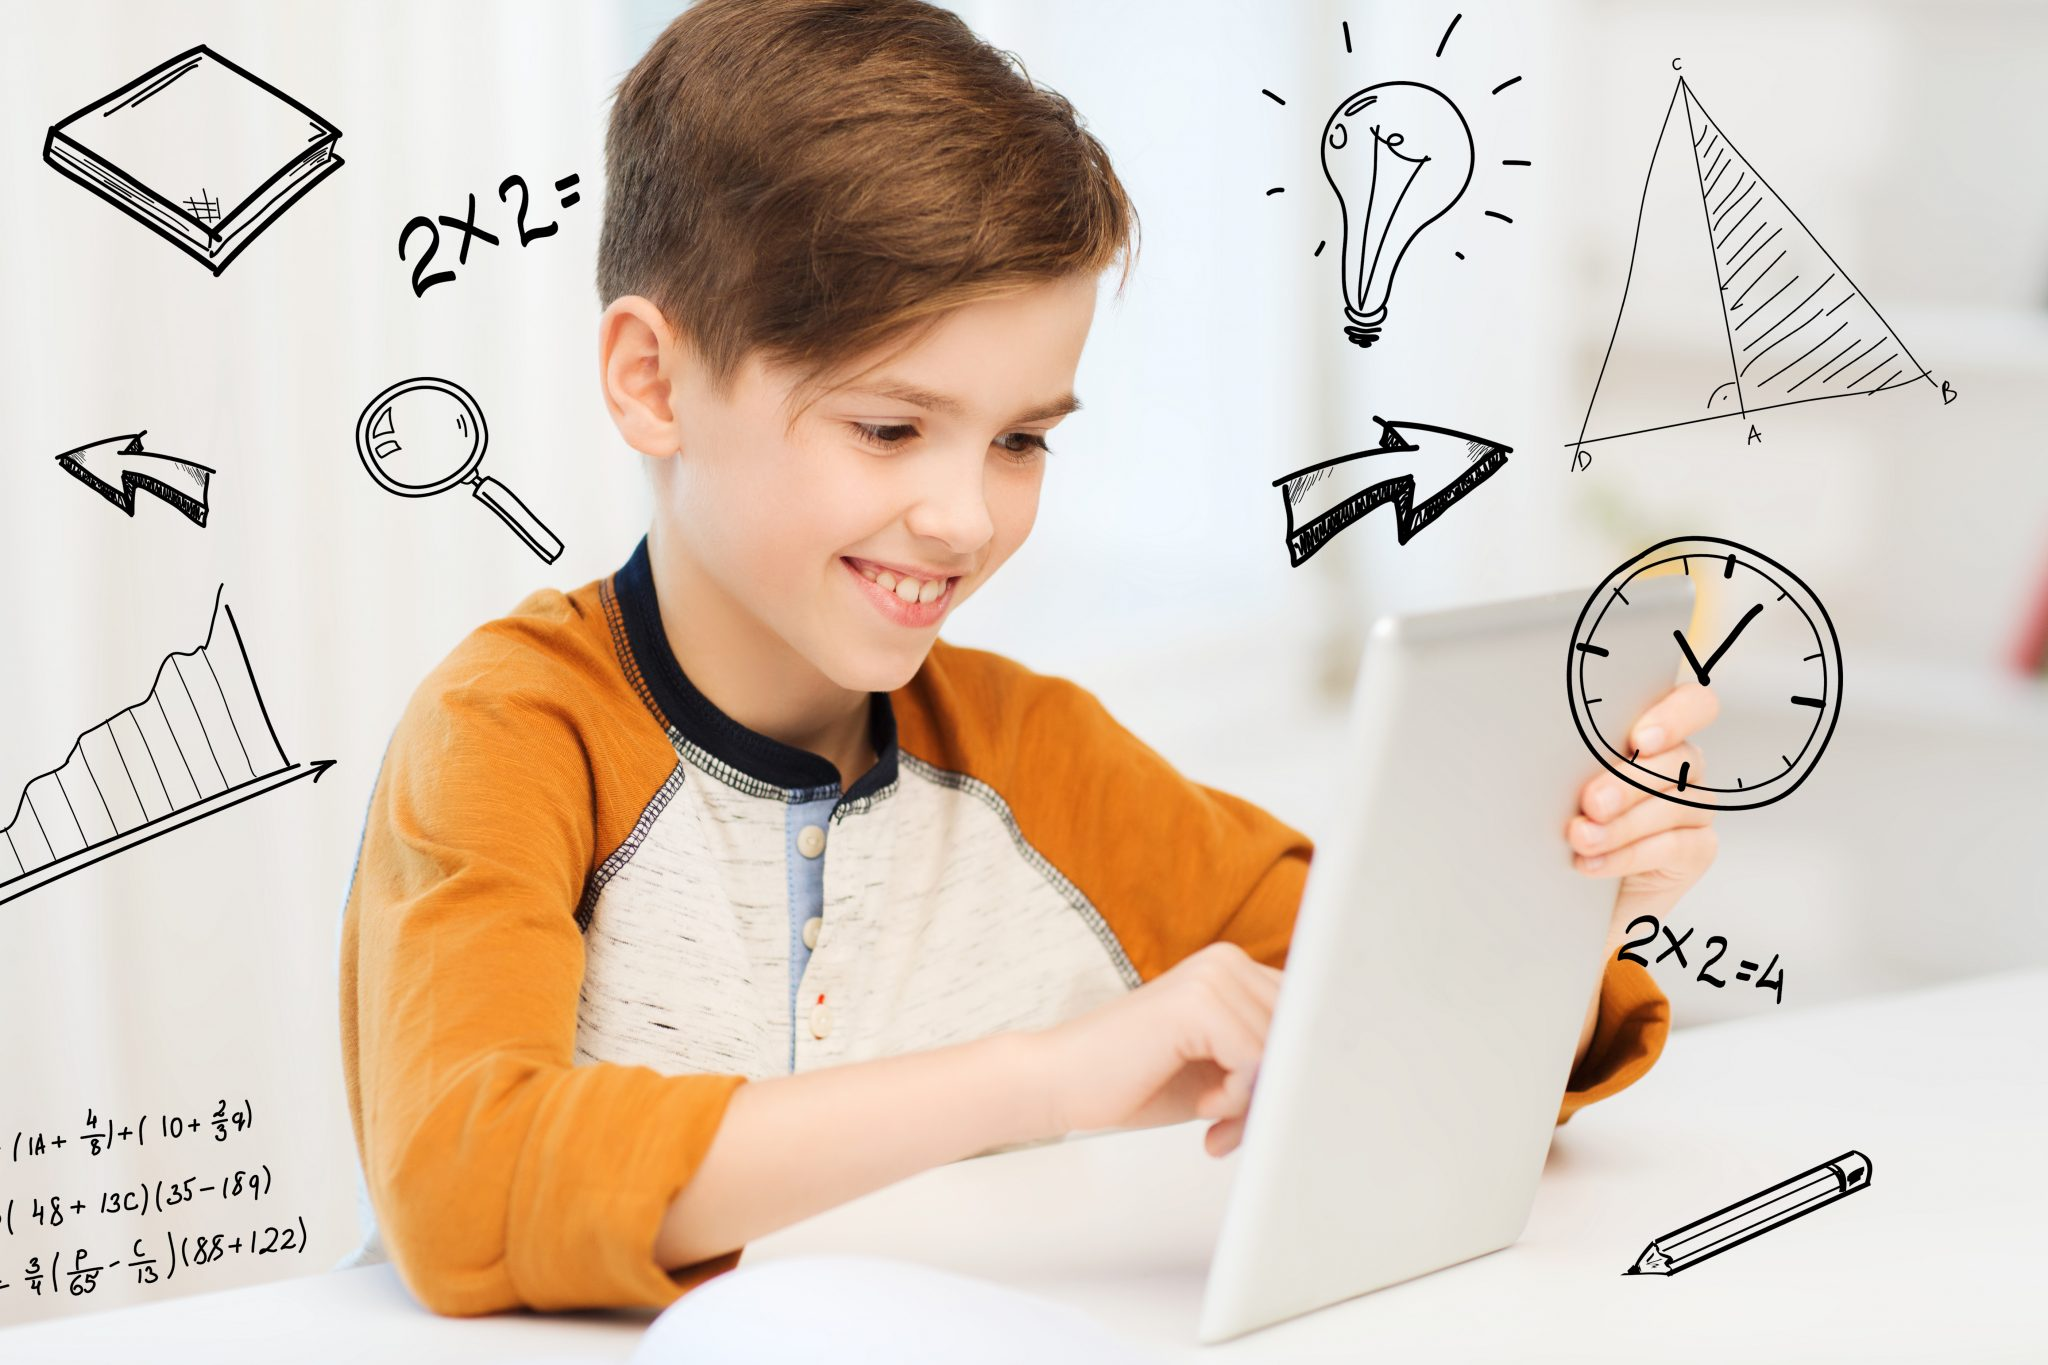 Worksheet Free Online Homeschool Classes online classes archives homeschooling help is math an option for your child